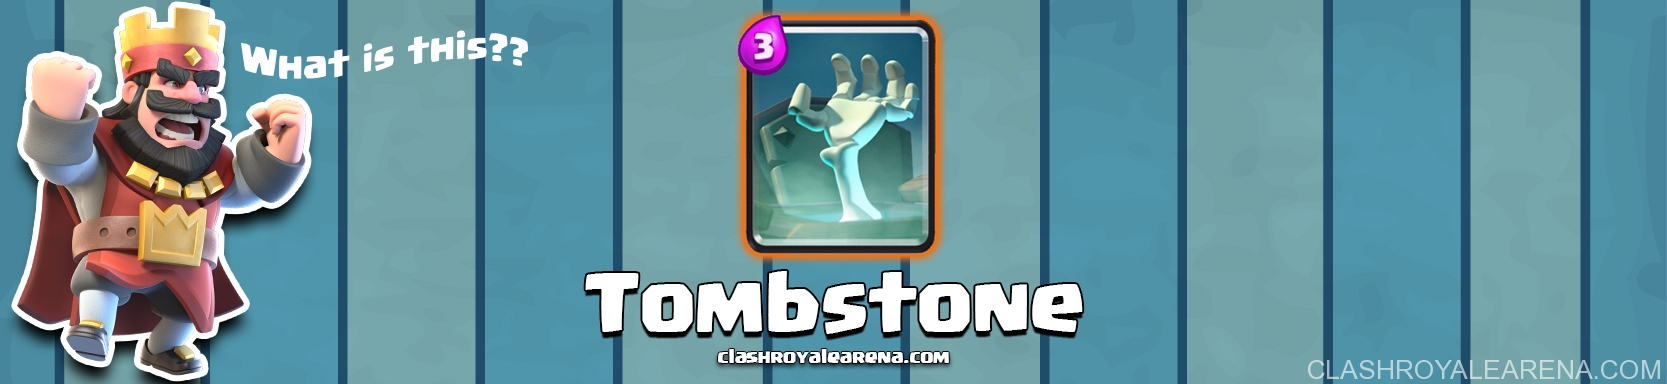 Tombstone Clash Royale